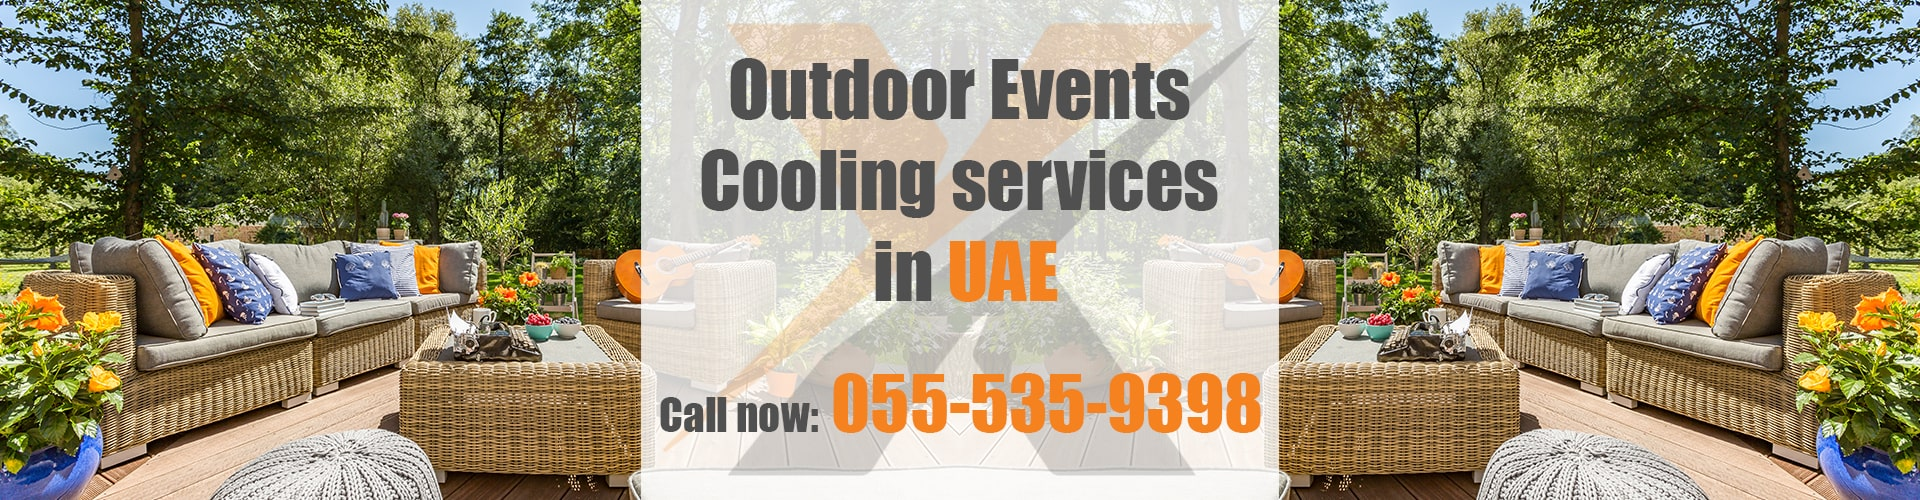 Outdoor Events Cooling